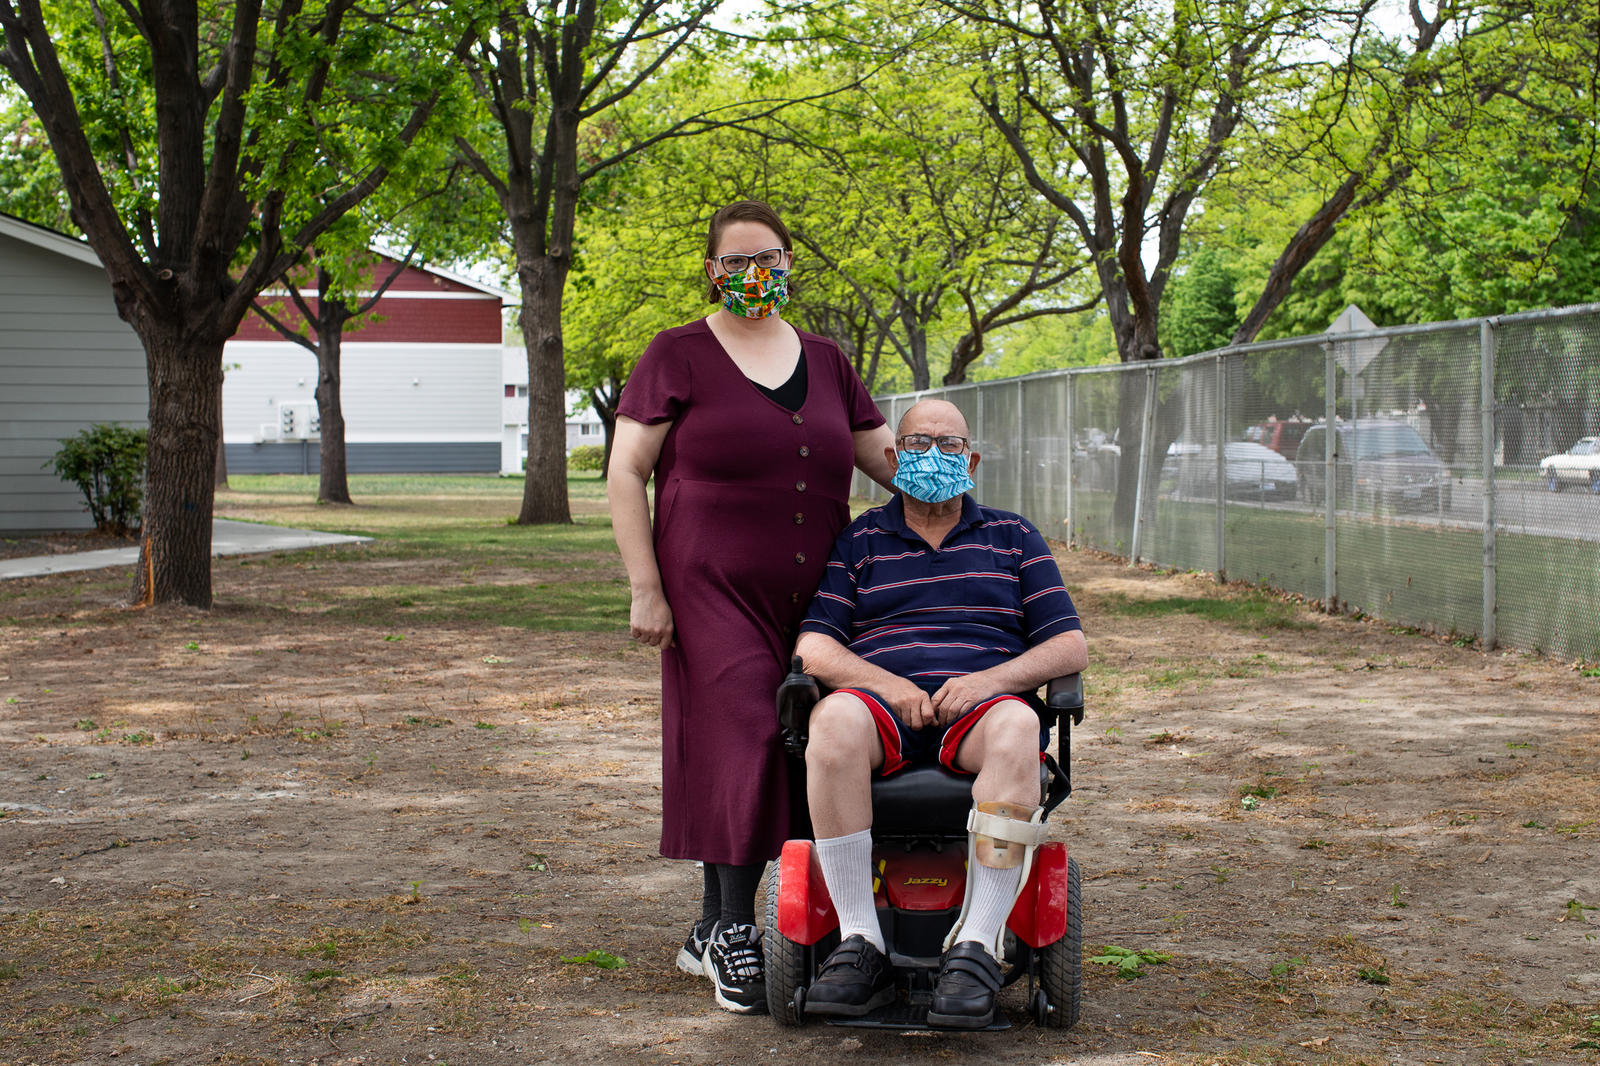 """Desirae Hernandez, a caregiver in Kennewick, Benton County, stands with her client Scott Philbeck, 60, at his apartment complex, April 29, 2020. """"It's been hard,"""" says Philbeck, looking to Hernandez for suppport with expressing how things have been lately. """"He doesn't get out much these days and the anxiety from that can be debilitating I've noticed. The masks create this additional layer of claustrophobic anxiety for my clients as well."""" (Matt M. McKnight/Crosscut)"""